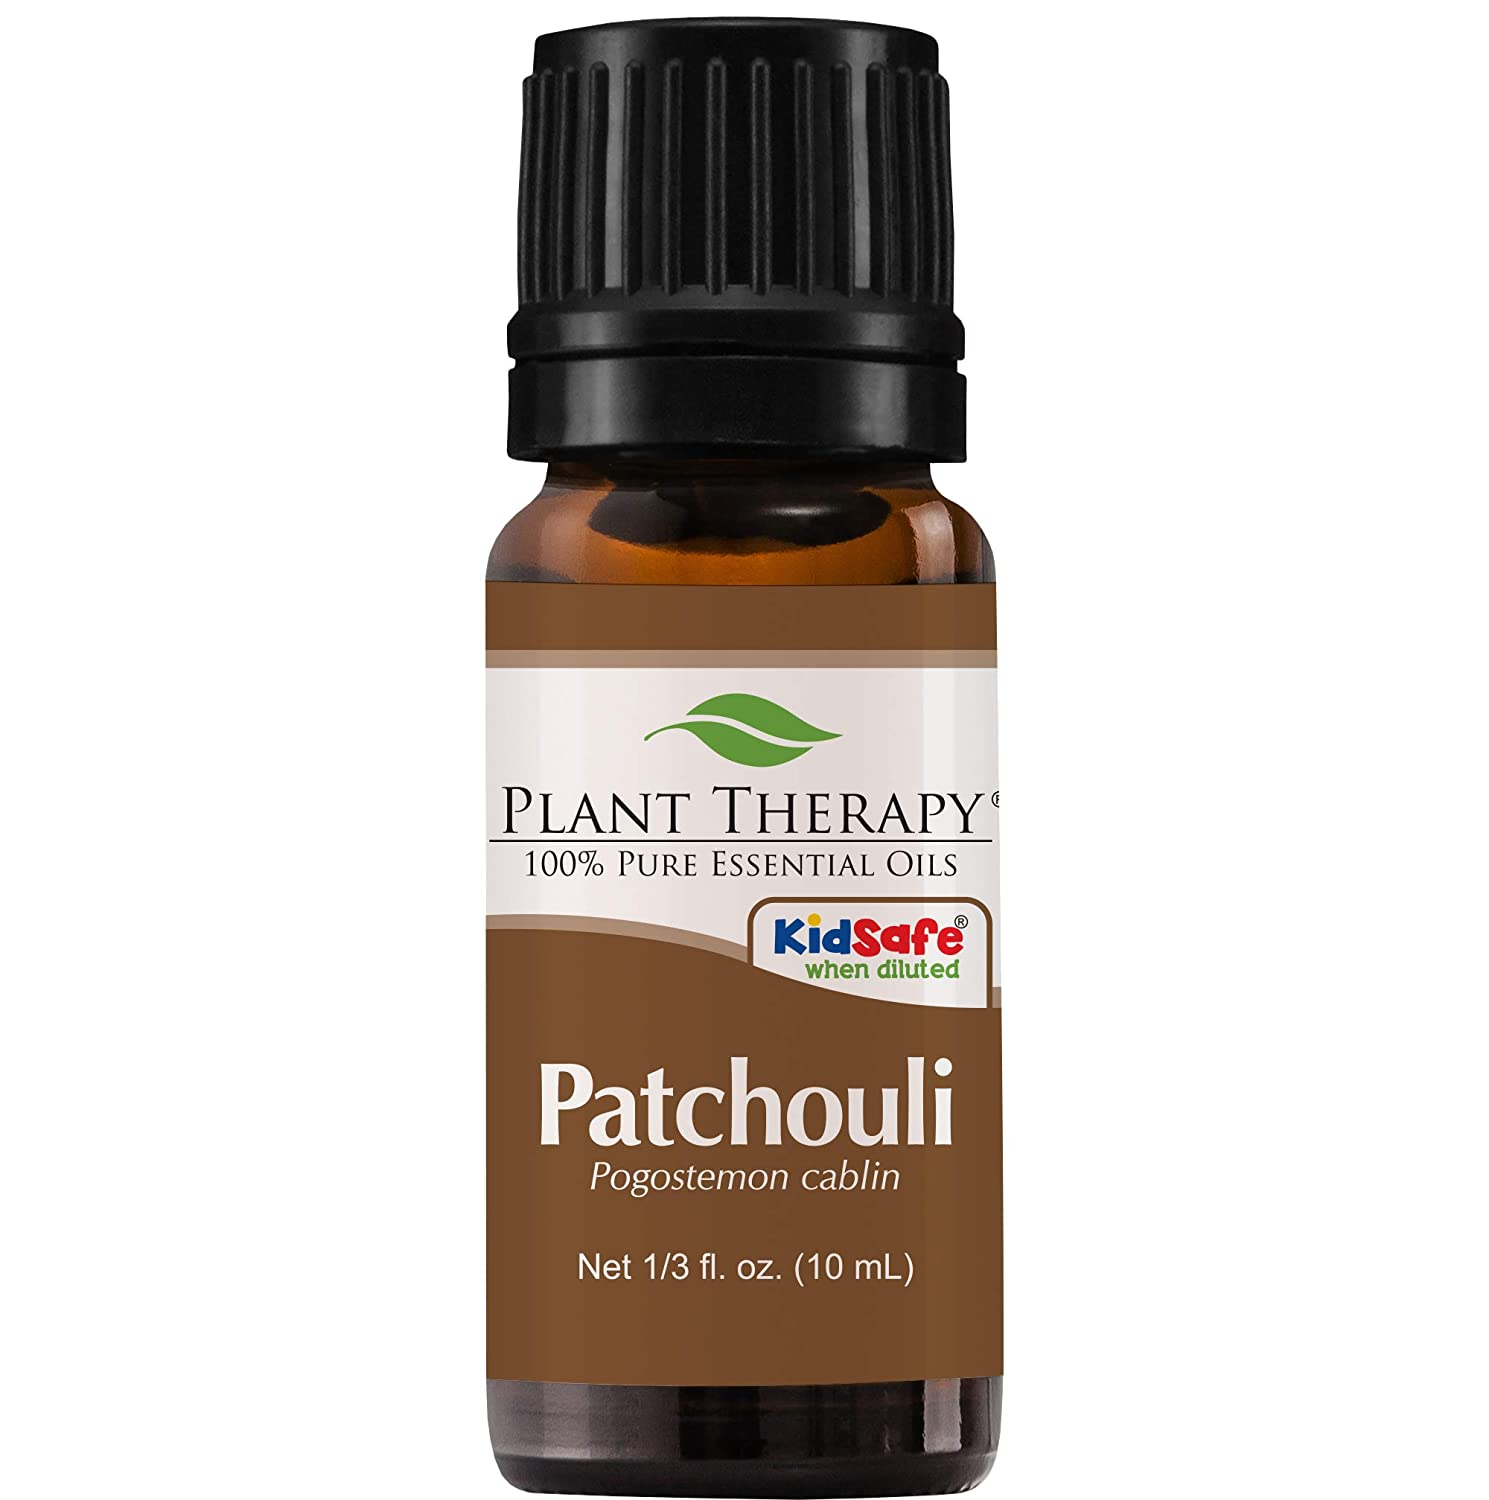 Plant Therapy Patchouli Essential Oil | 100% Pure, Undiluted, Natural Aromatherapy, Therapeutic Grade | 10 Milliliter (⅓ Ounce)